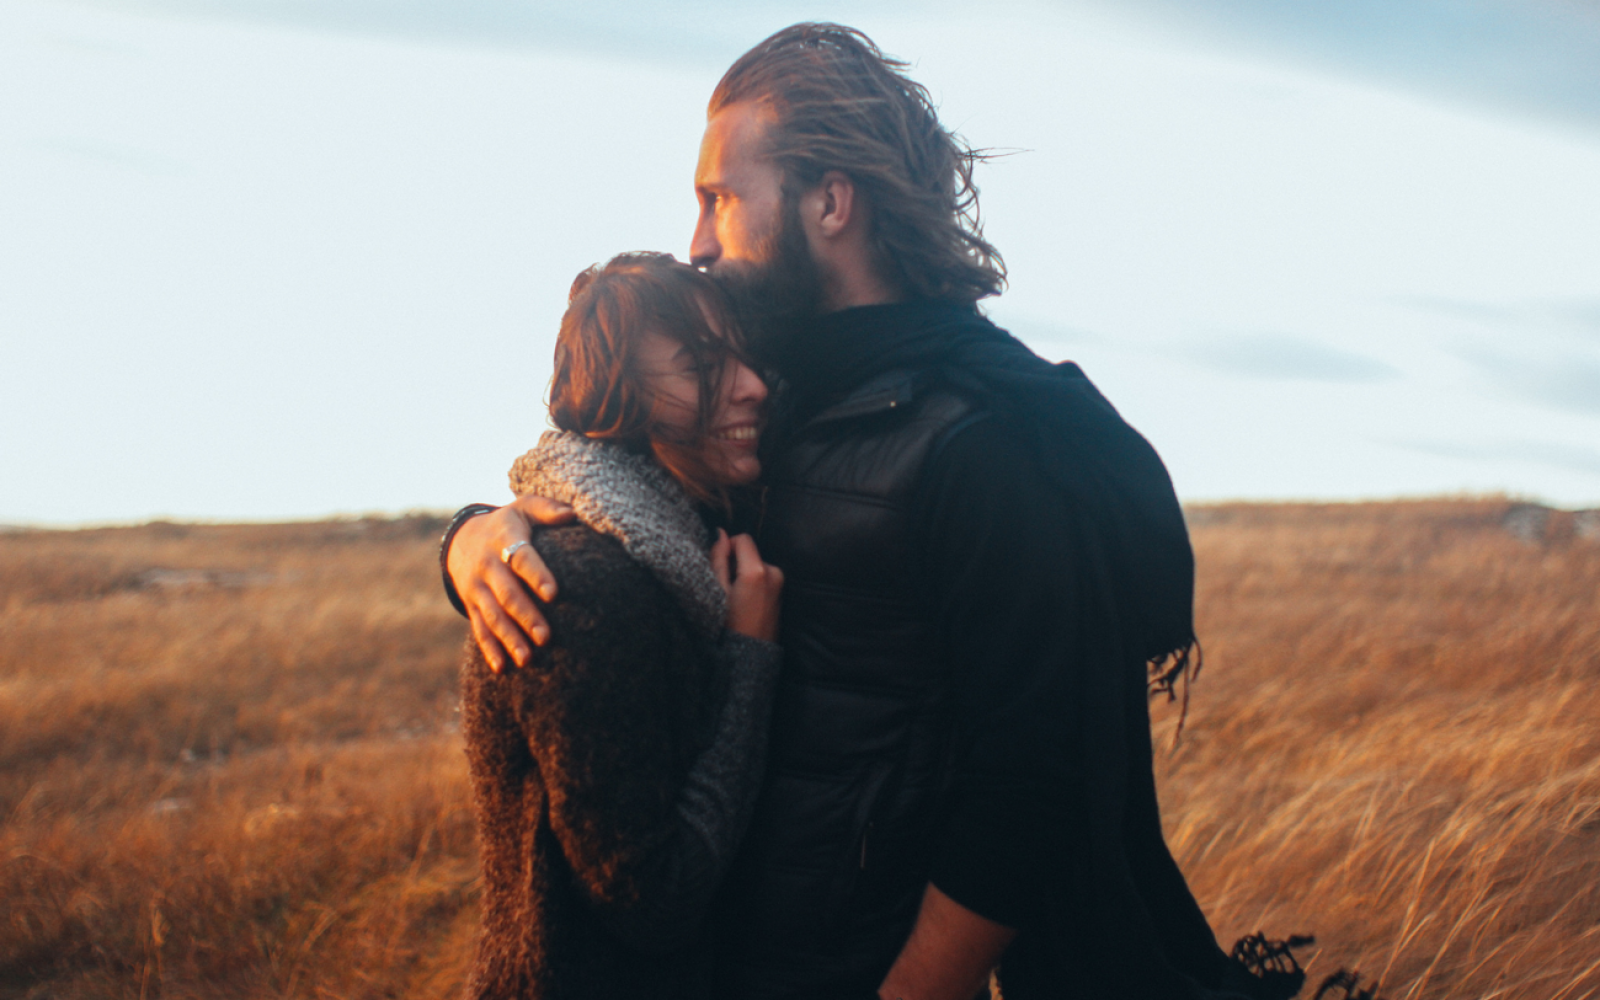 15 Adorably Weird But Simple Ways To Say 'I Love You'